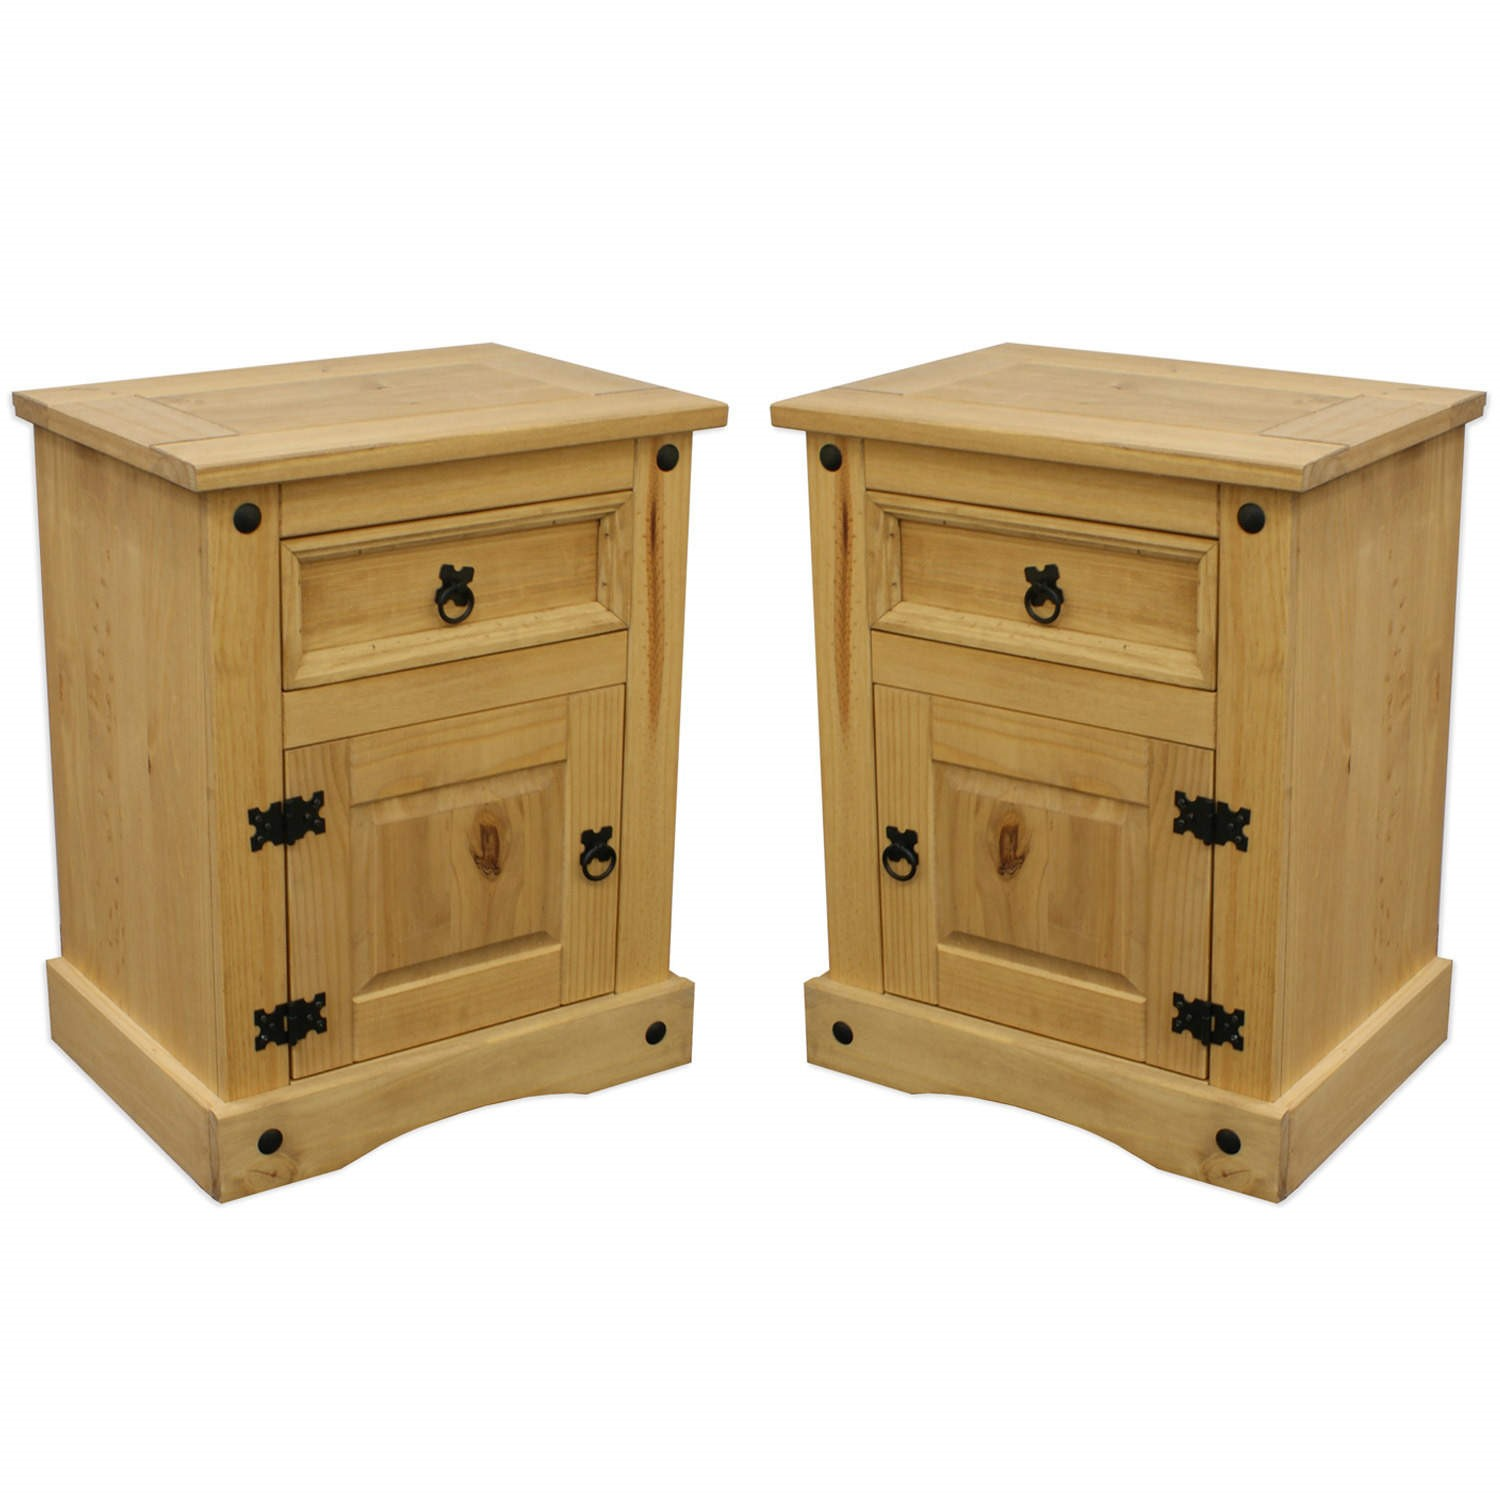 Set Of 2 Corona Mexican Bedside Table In Solid Pine